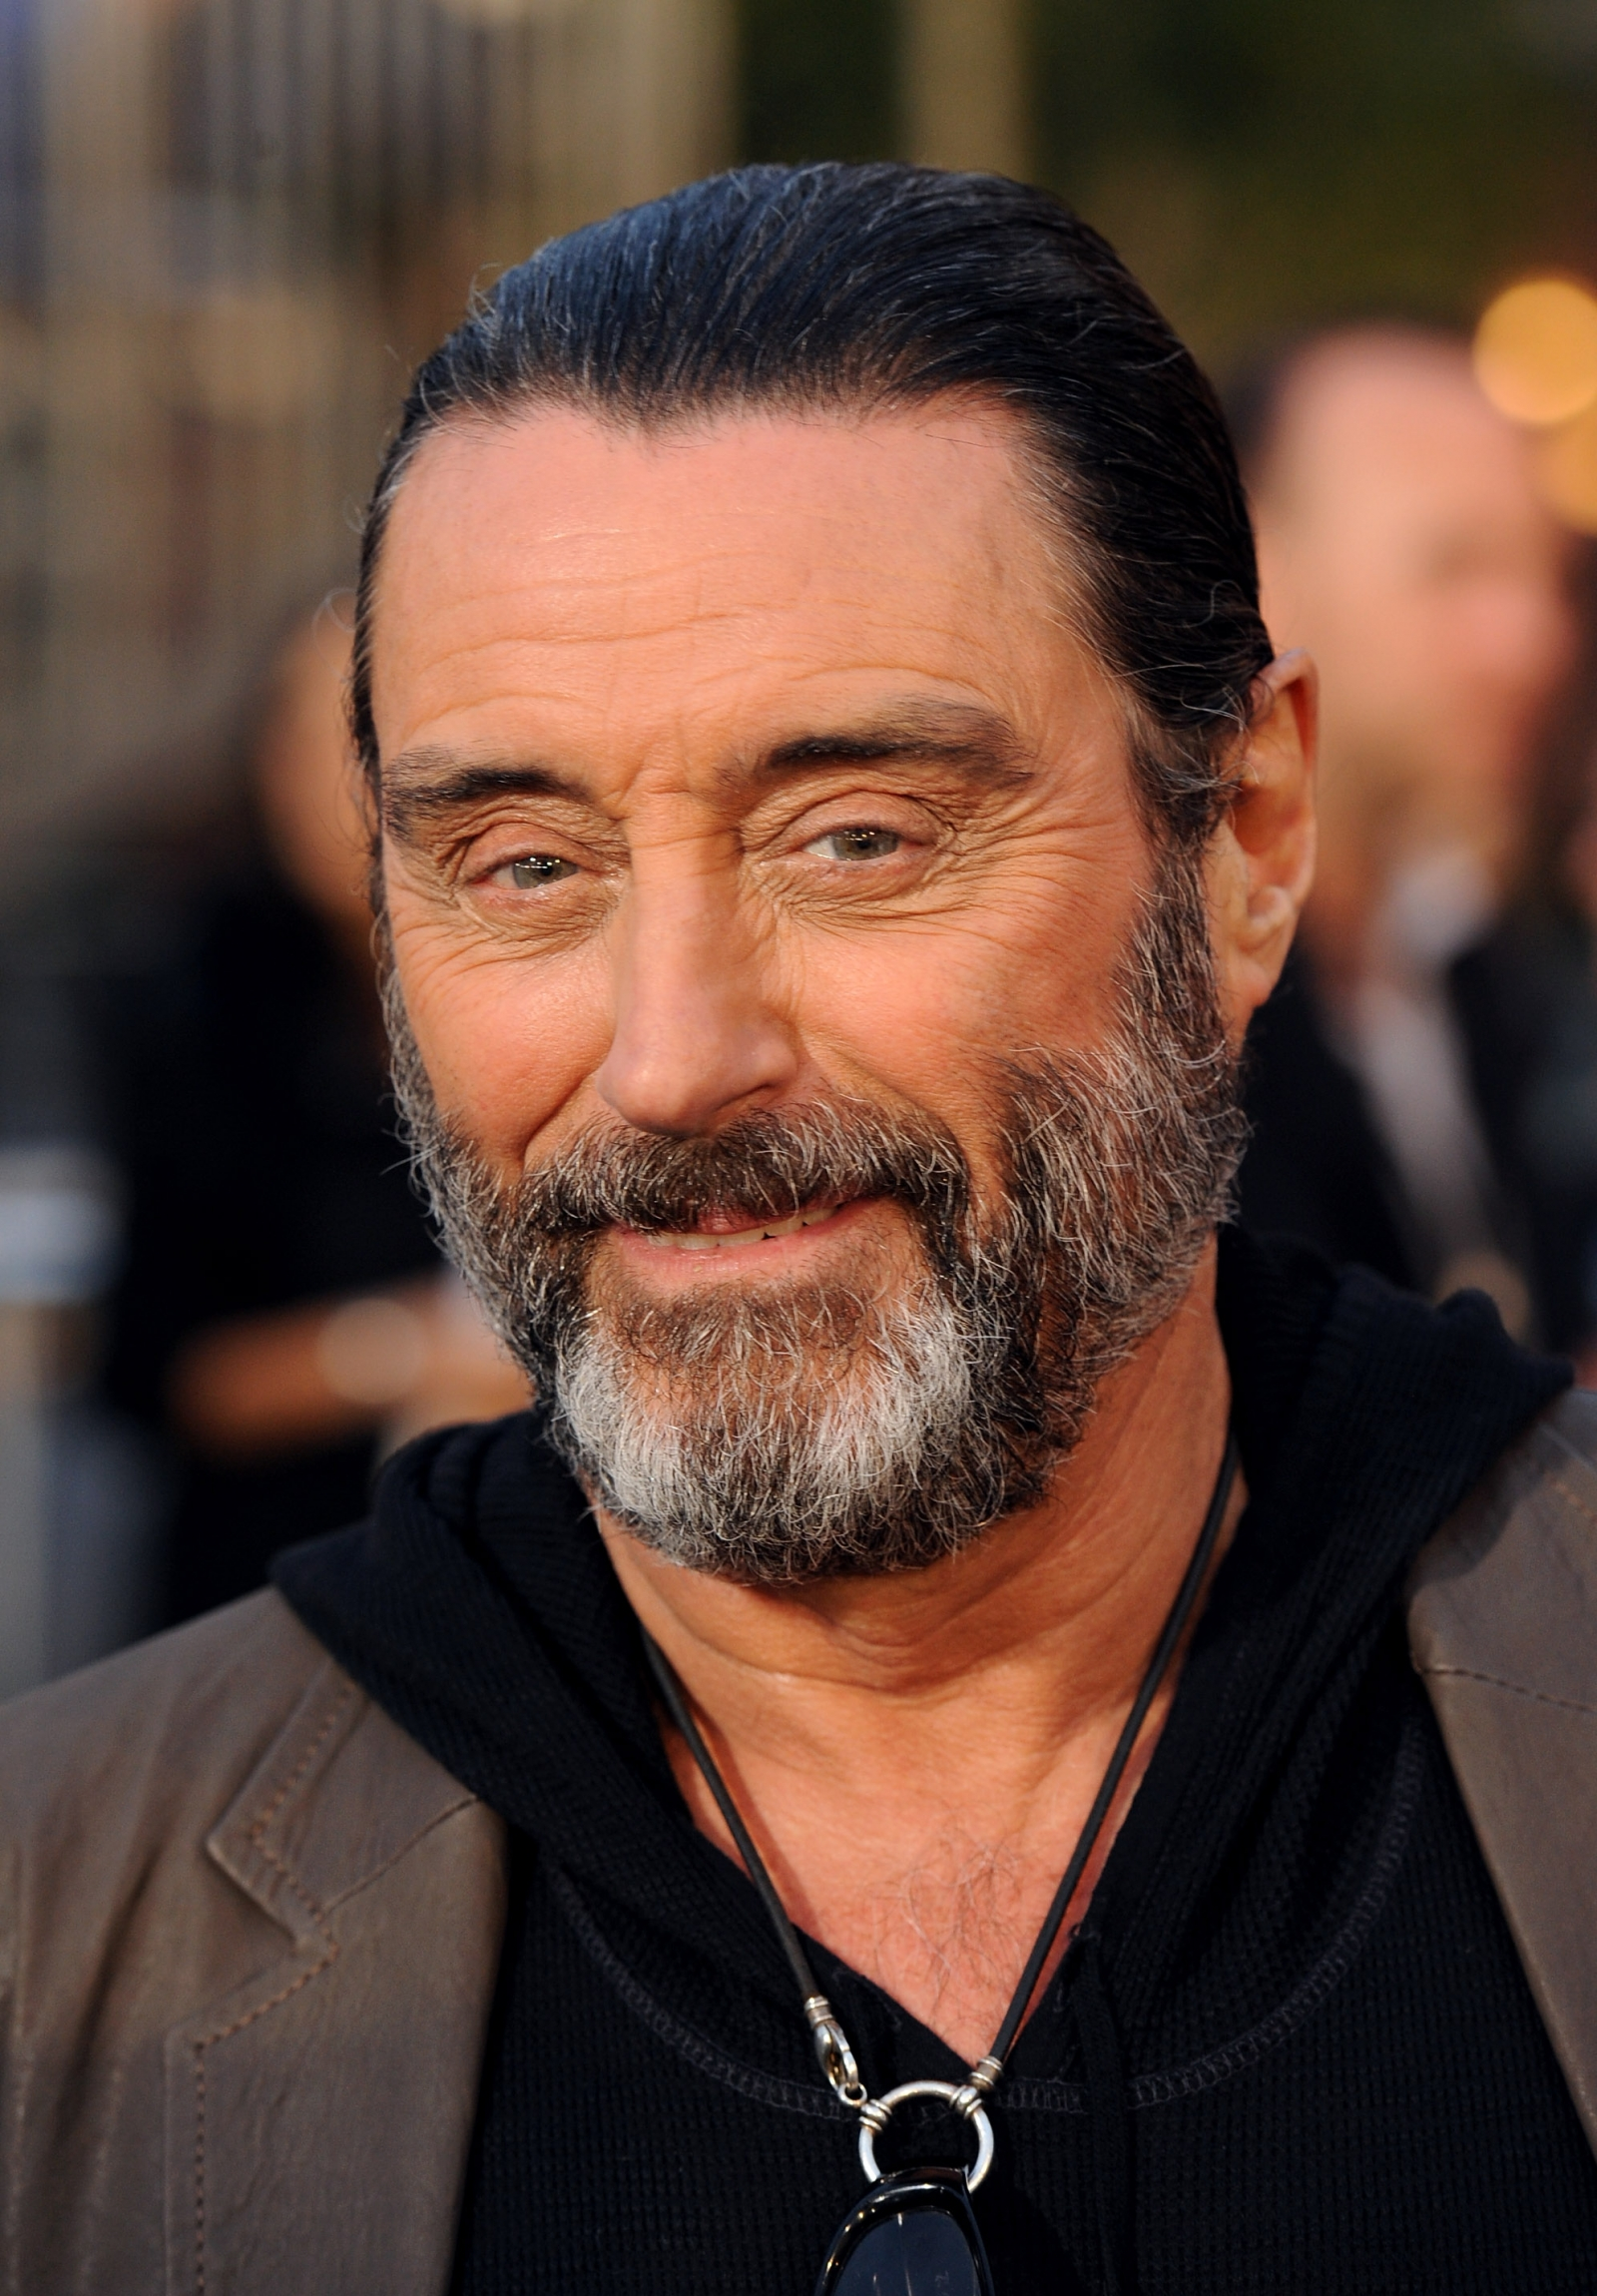 'Get a f*****g life': Game Of Thrones' Ian McShane lashes at fans after backlash for spoiling plot